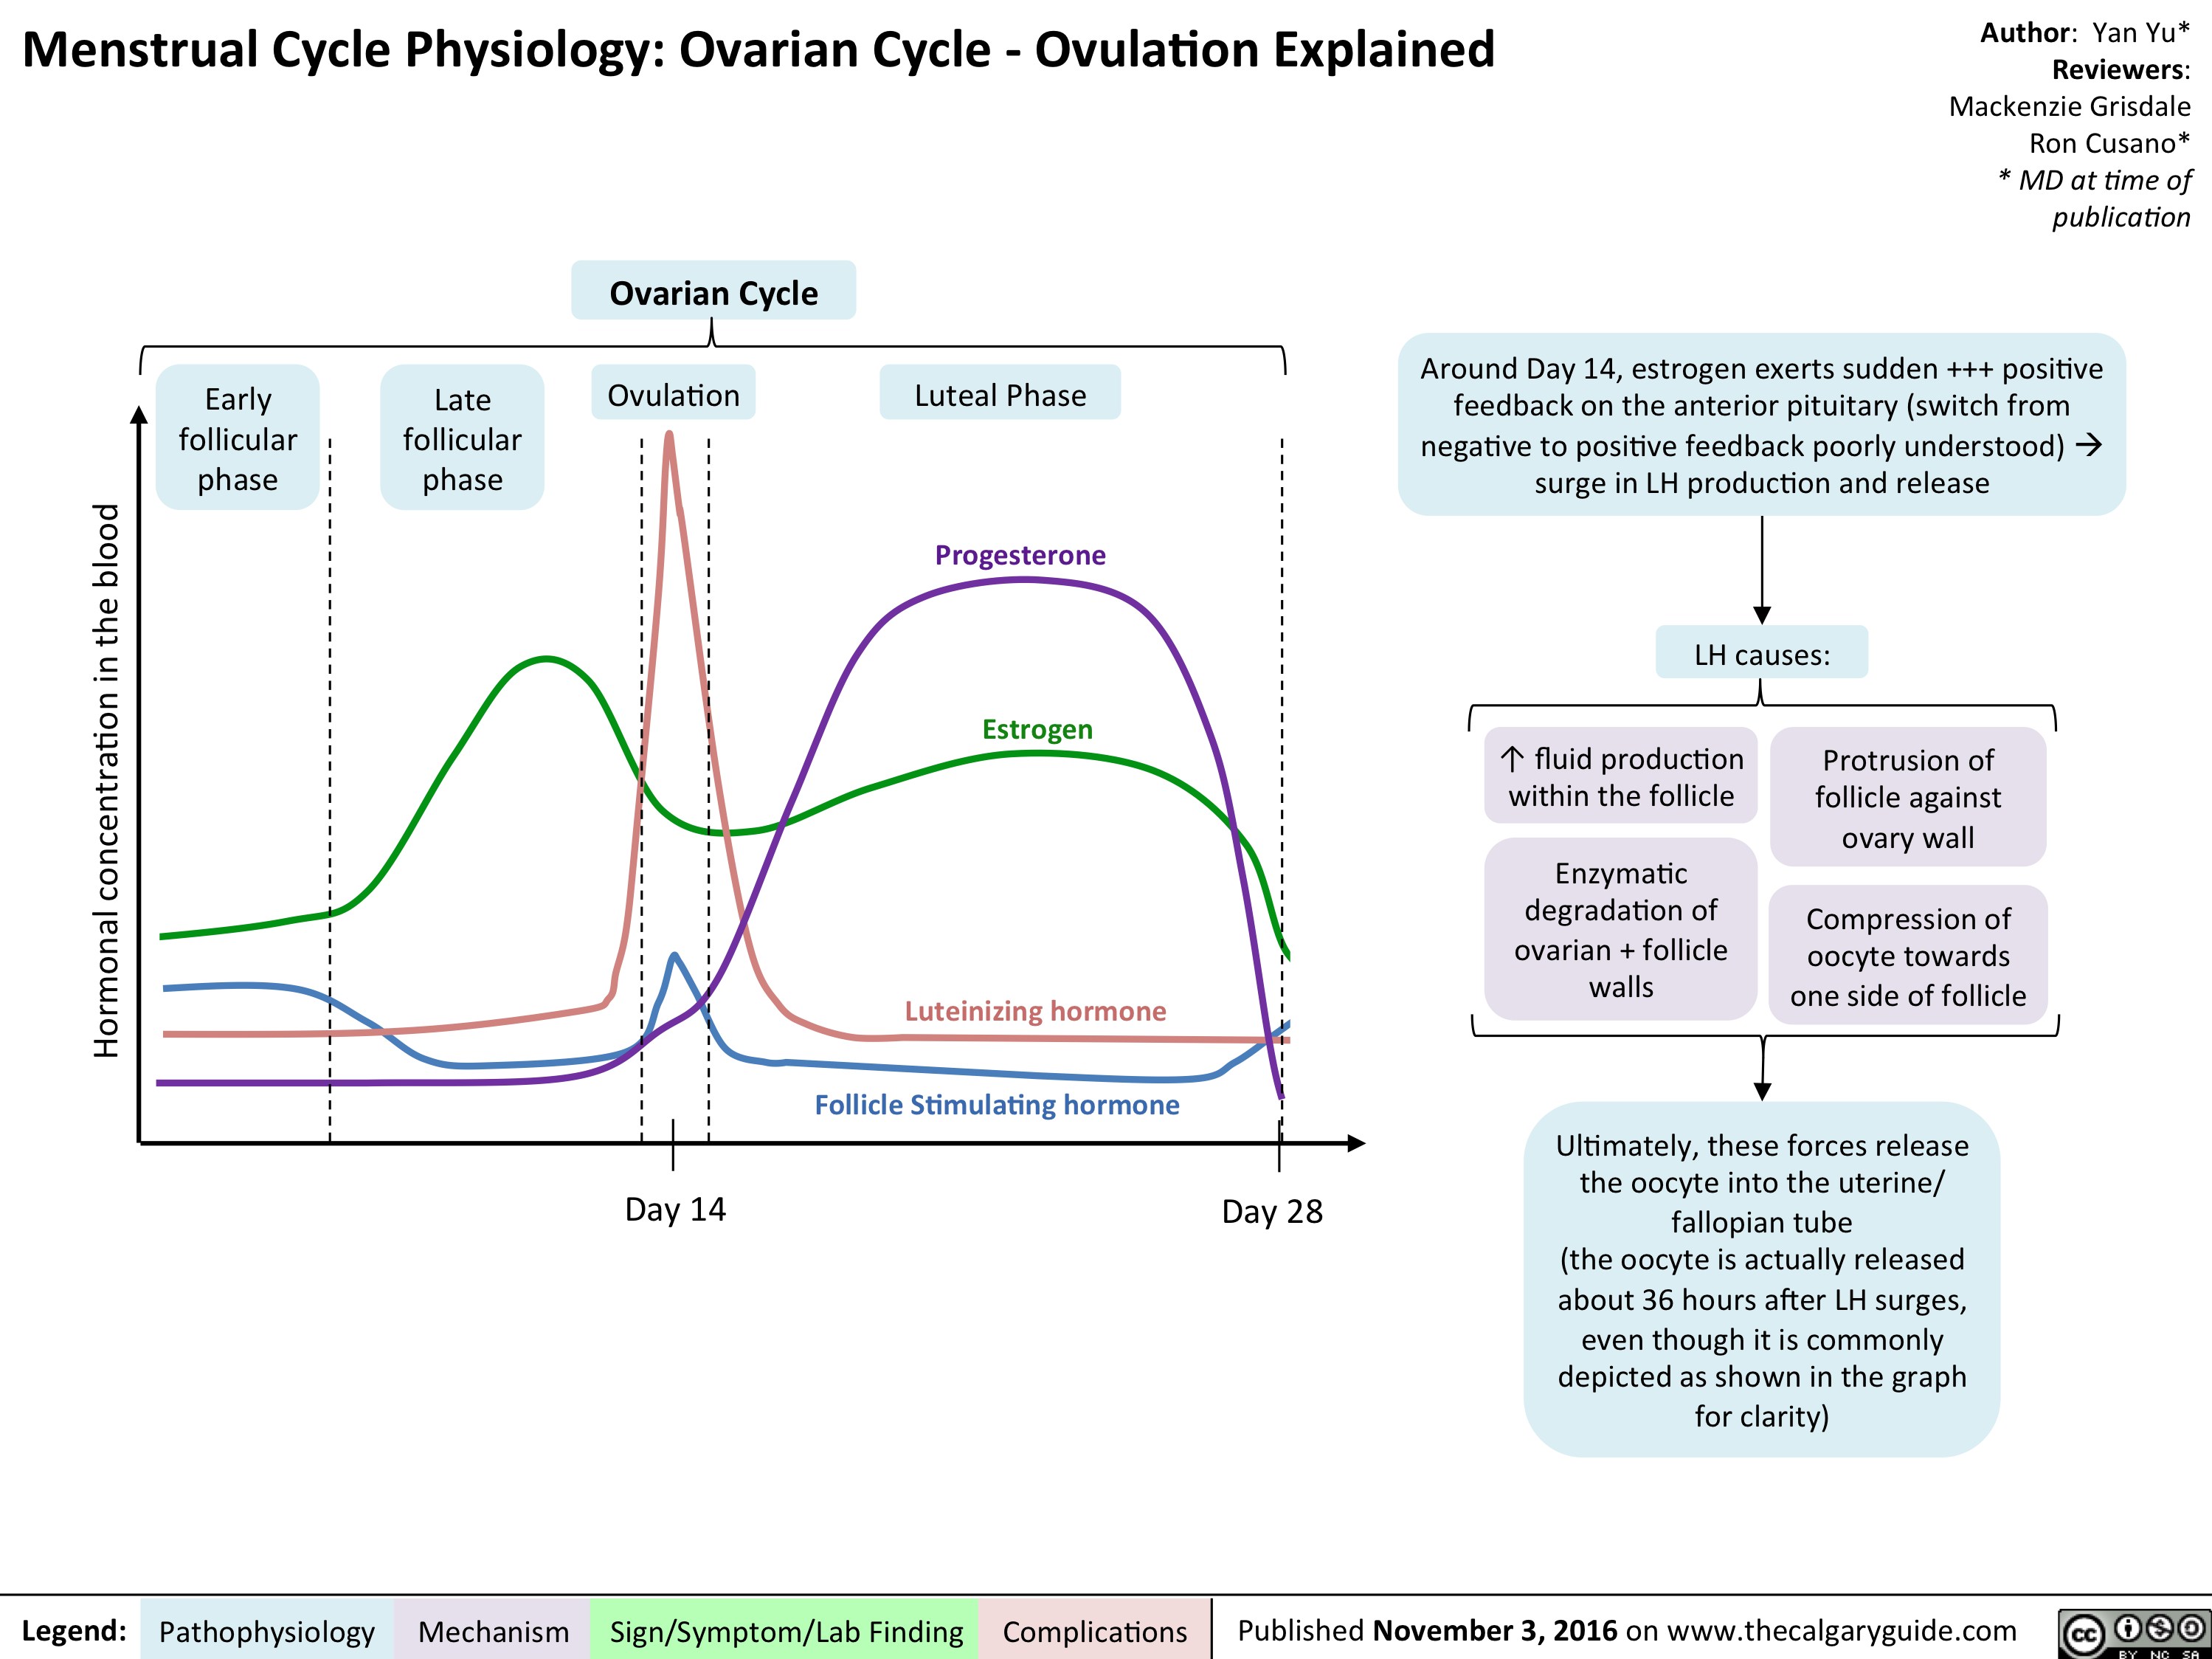 Finalized mg rc yy menstrual cycle physiology female cycle finalized mg rc yy menstrual cycle physiology female cycle pathophysiology pinterest menstrual cycle fandeluxe Images